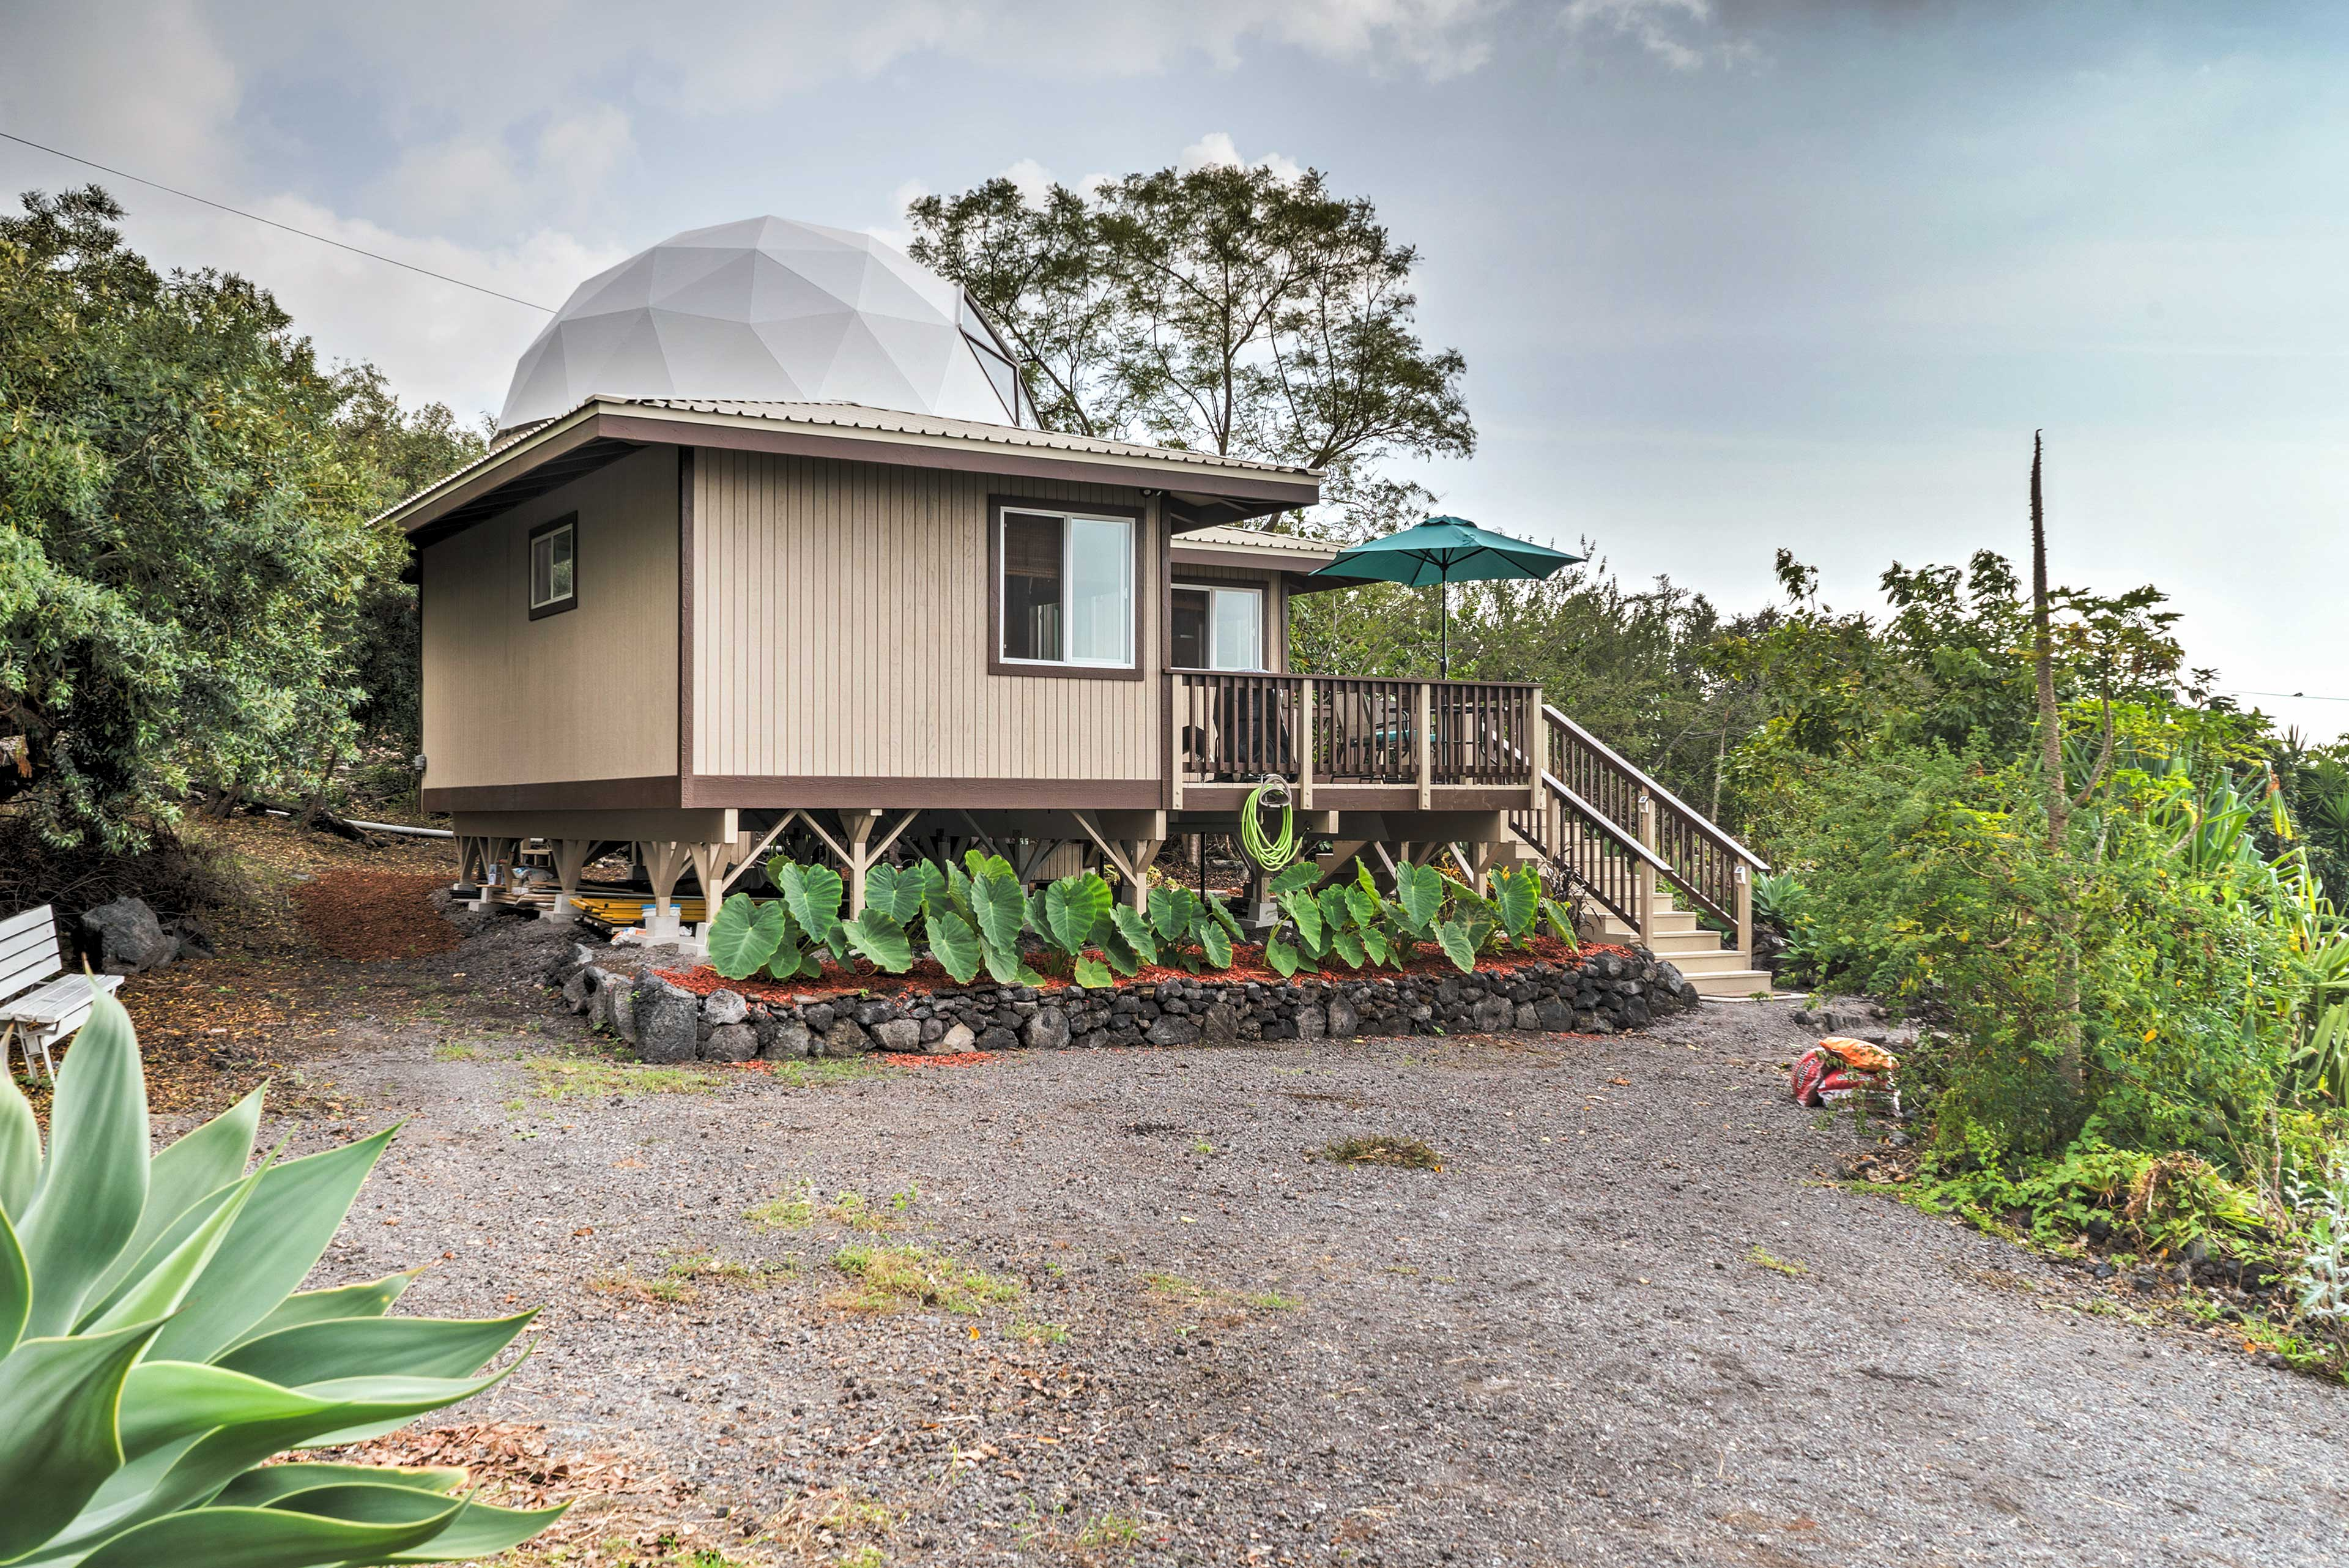 The geodesic home features ocean views and sleeps 2 guests with room for 2 more.